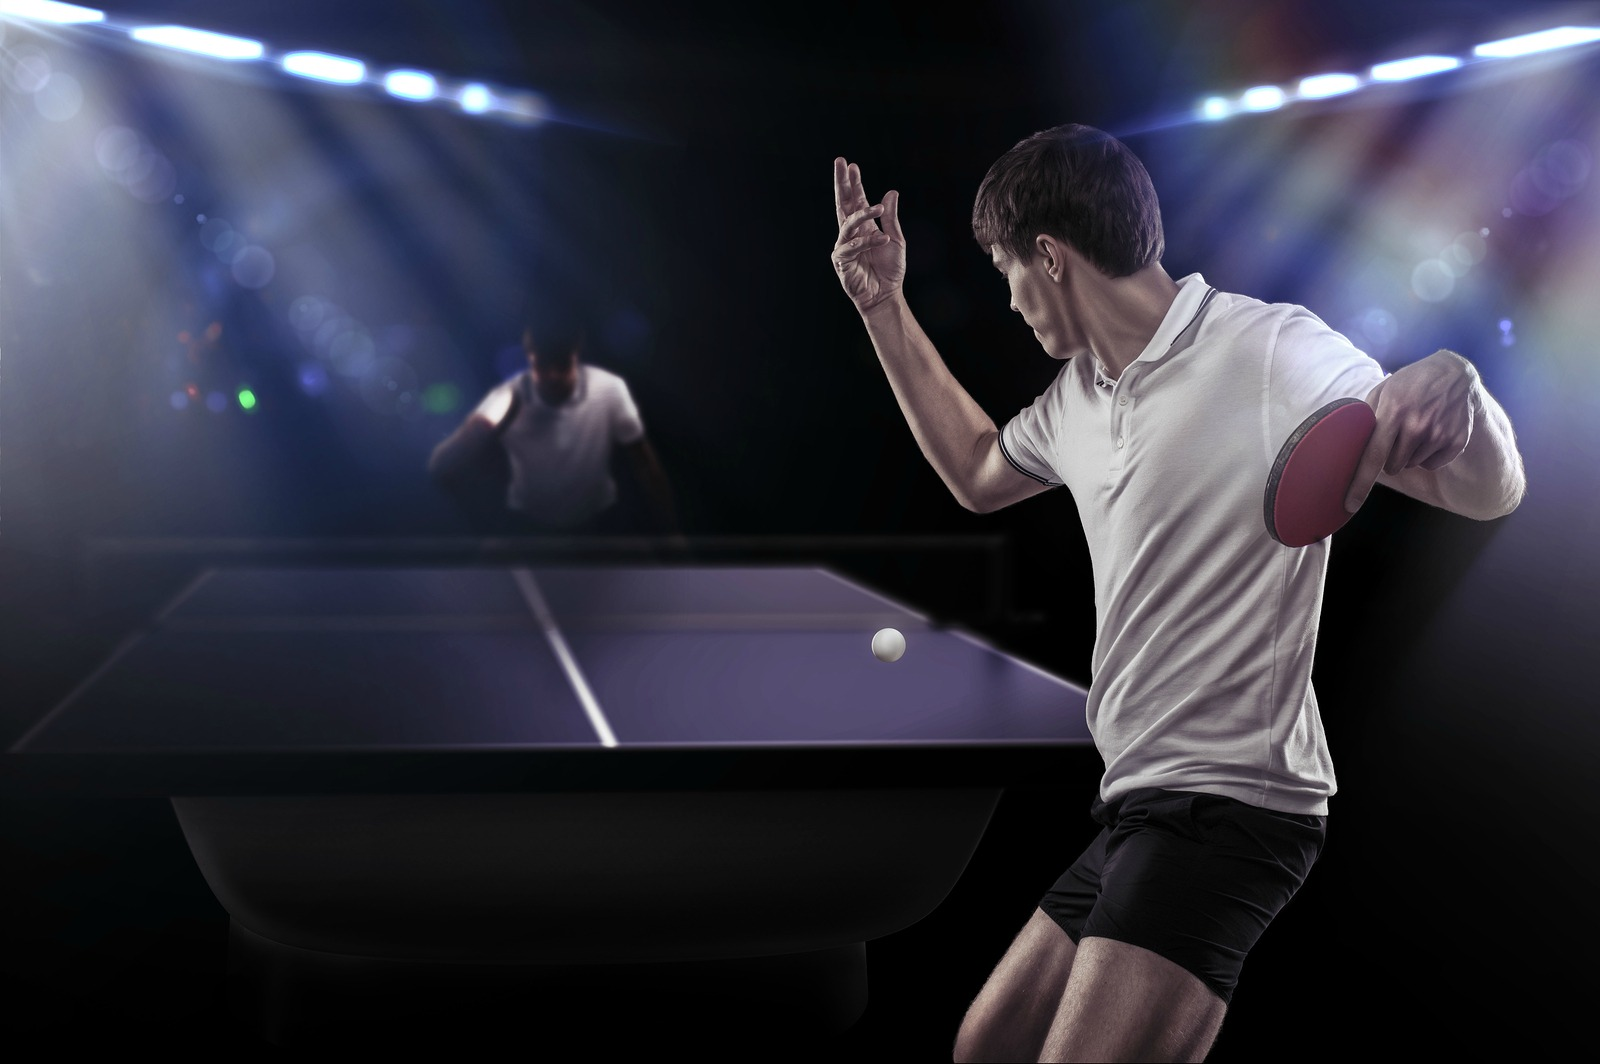 10 Ways To Get Better At Table Tennis